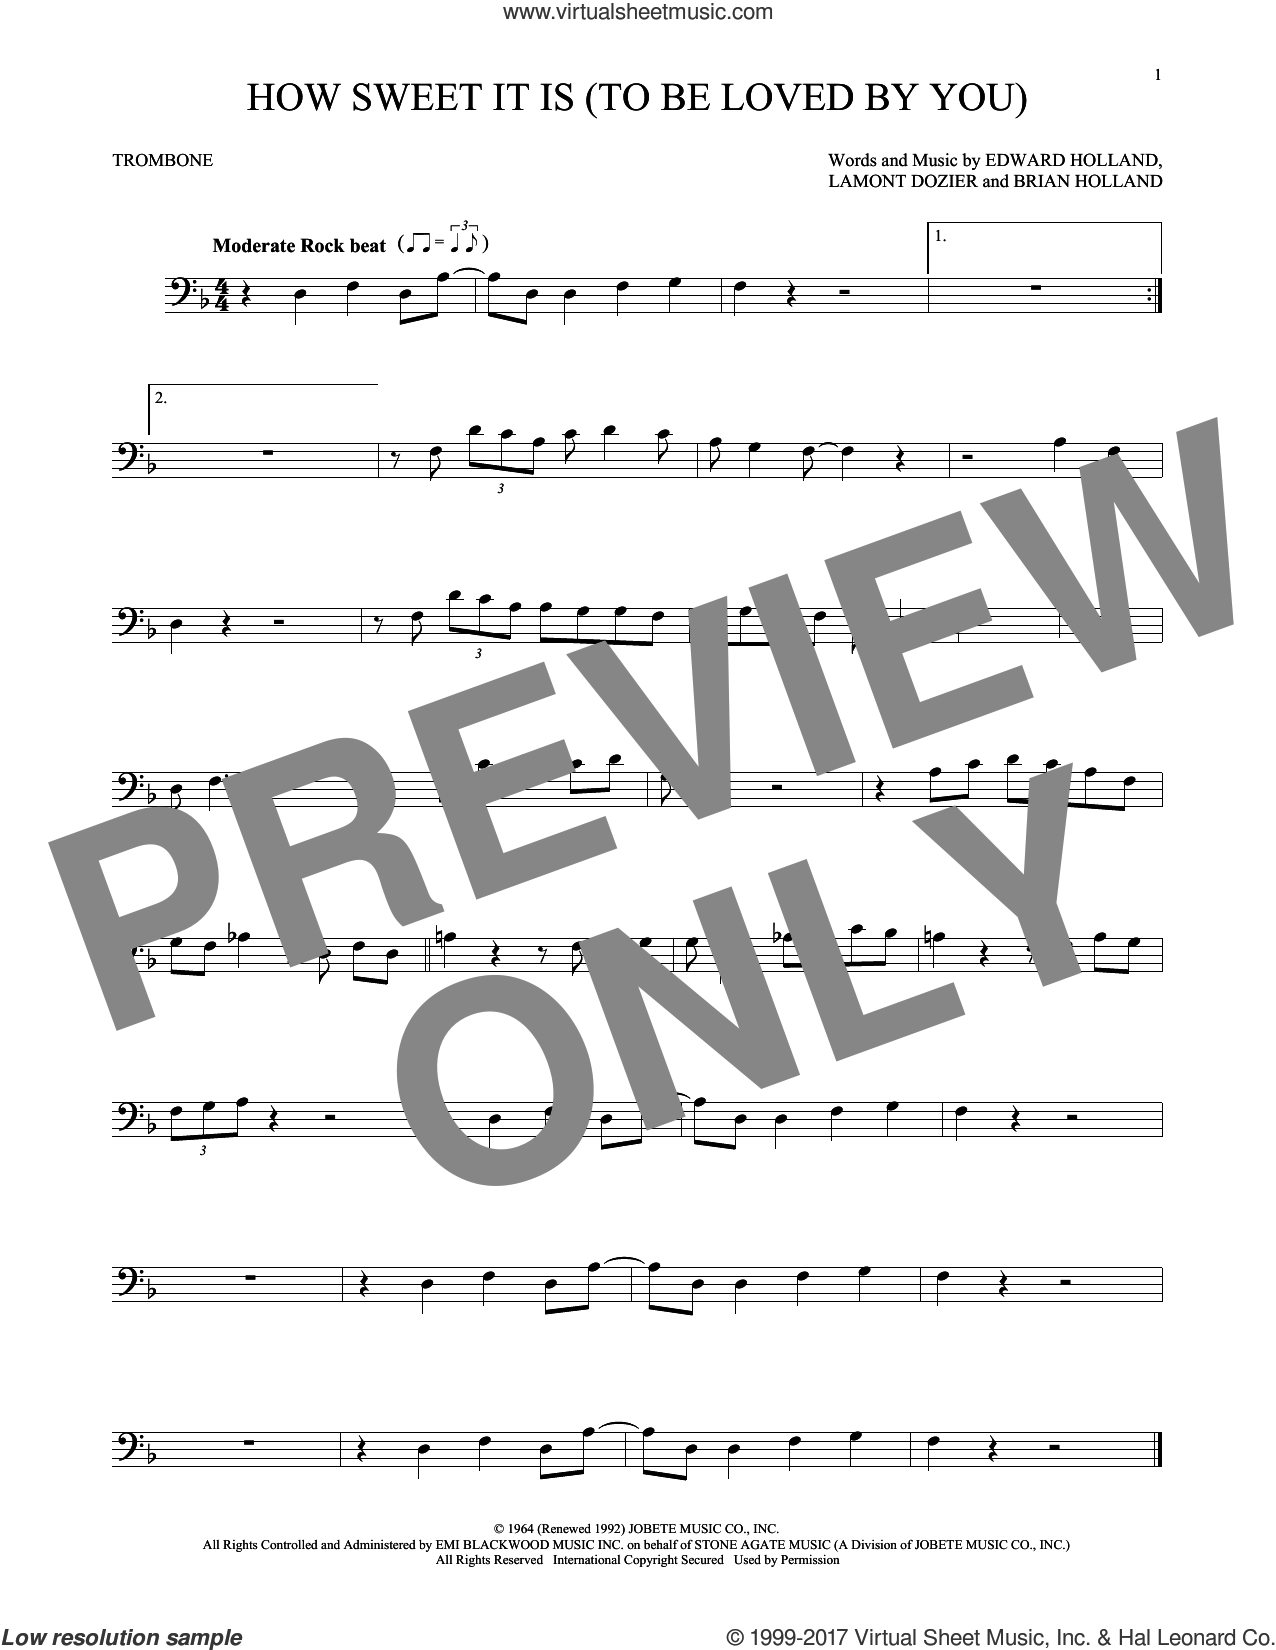 How Sweet It Is (To Be Loved By You) sheet music for trombone solo by James Taylor, Marvin Gaye, Brian Holland, Eddie Holland and Lamont Dozier, intermediate. Score Image Preview.